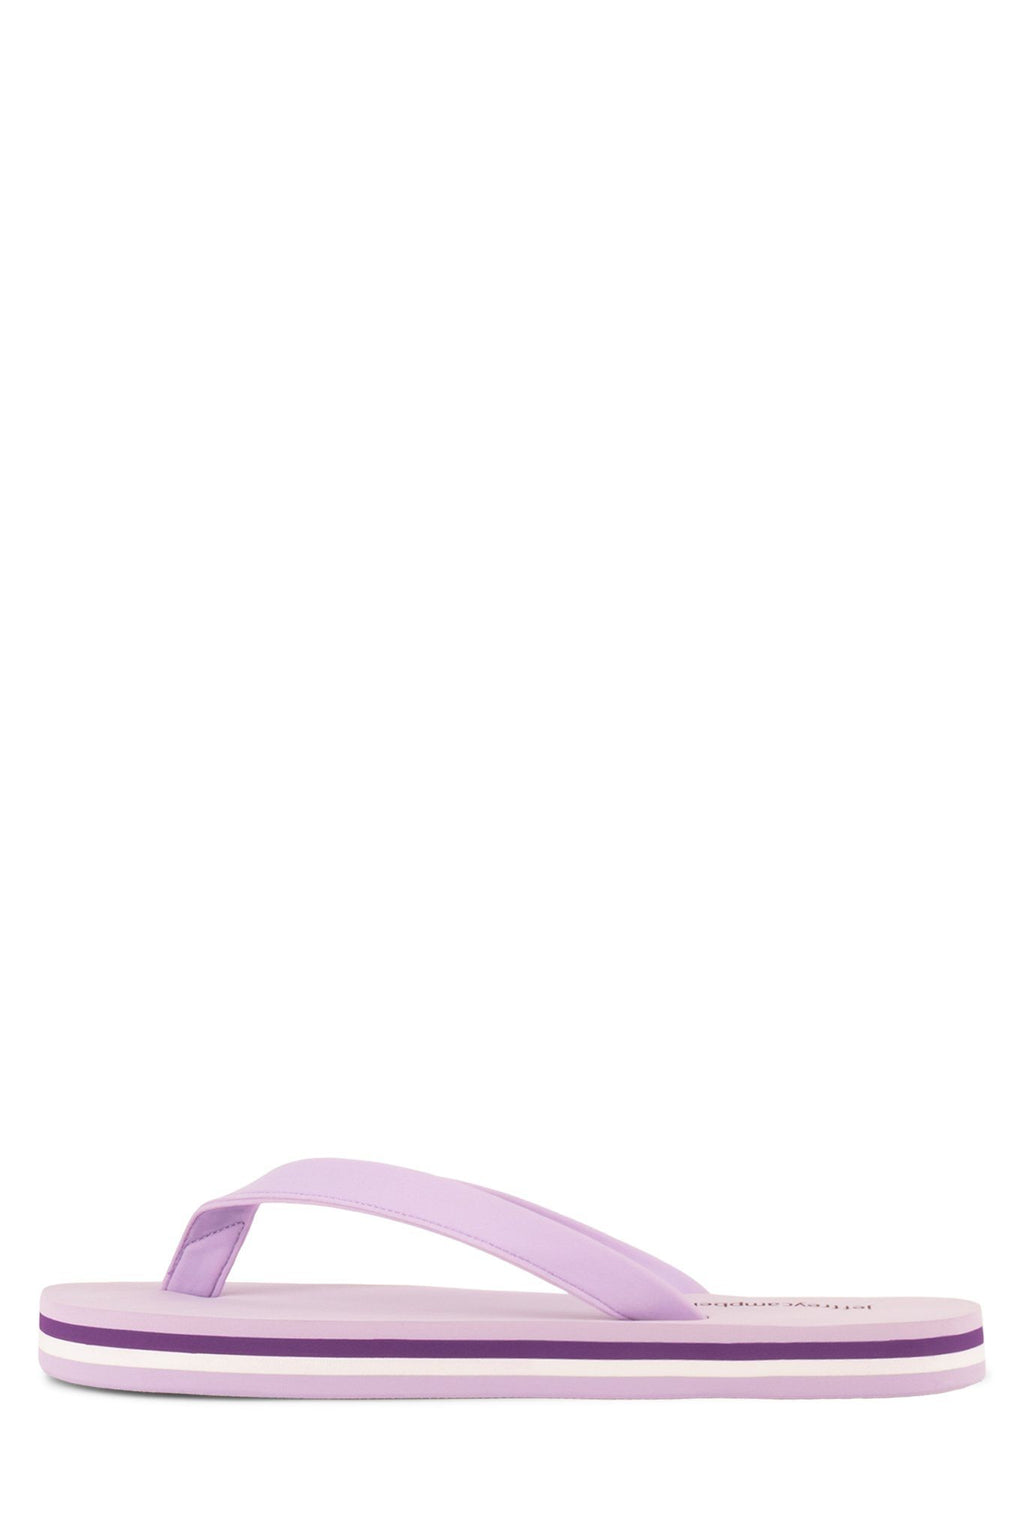 SURFIN Flat Sandal Jeffrey Campbell Lilac Combo 6